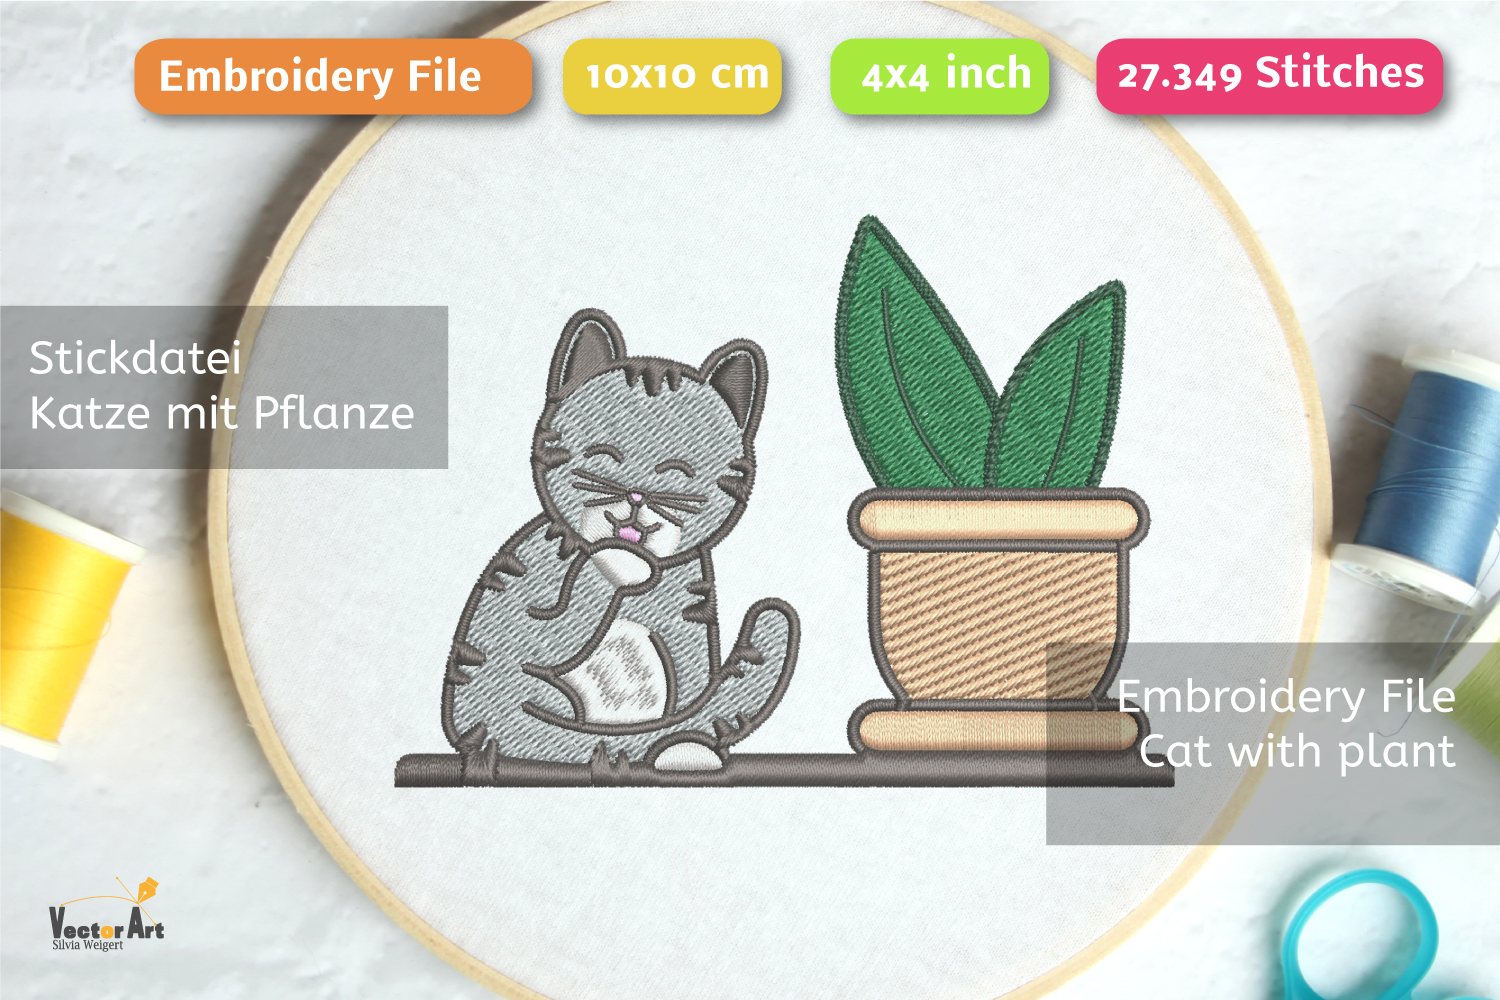 Cleaning Cat with Succulent - Embroidery File - 4x4 inch example image 2